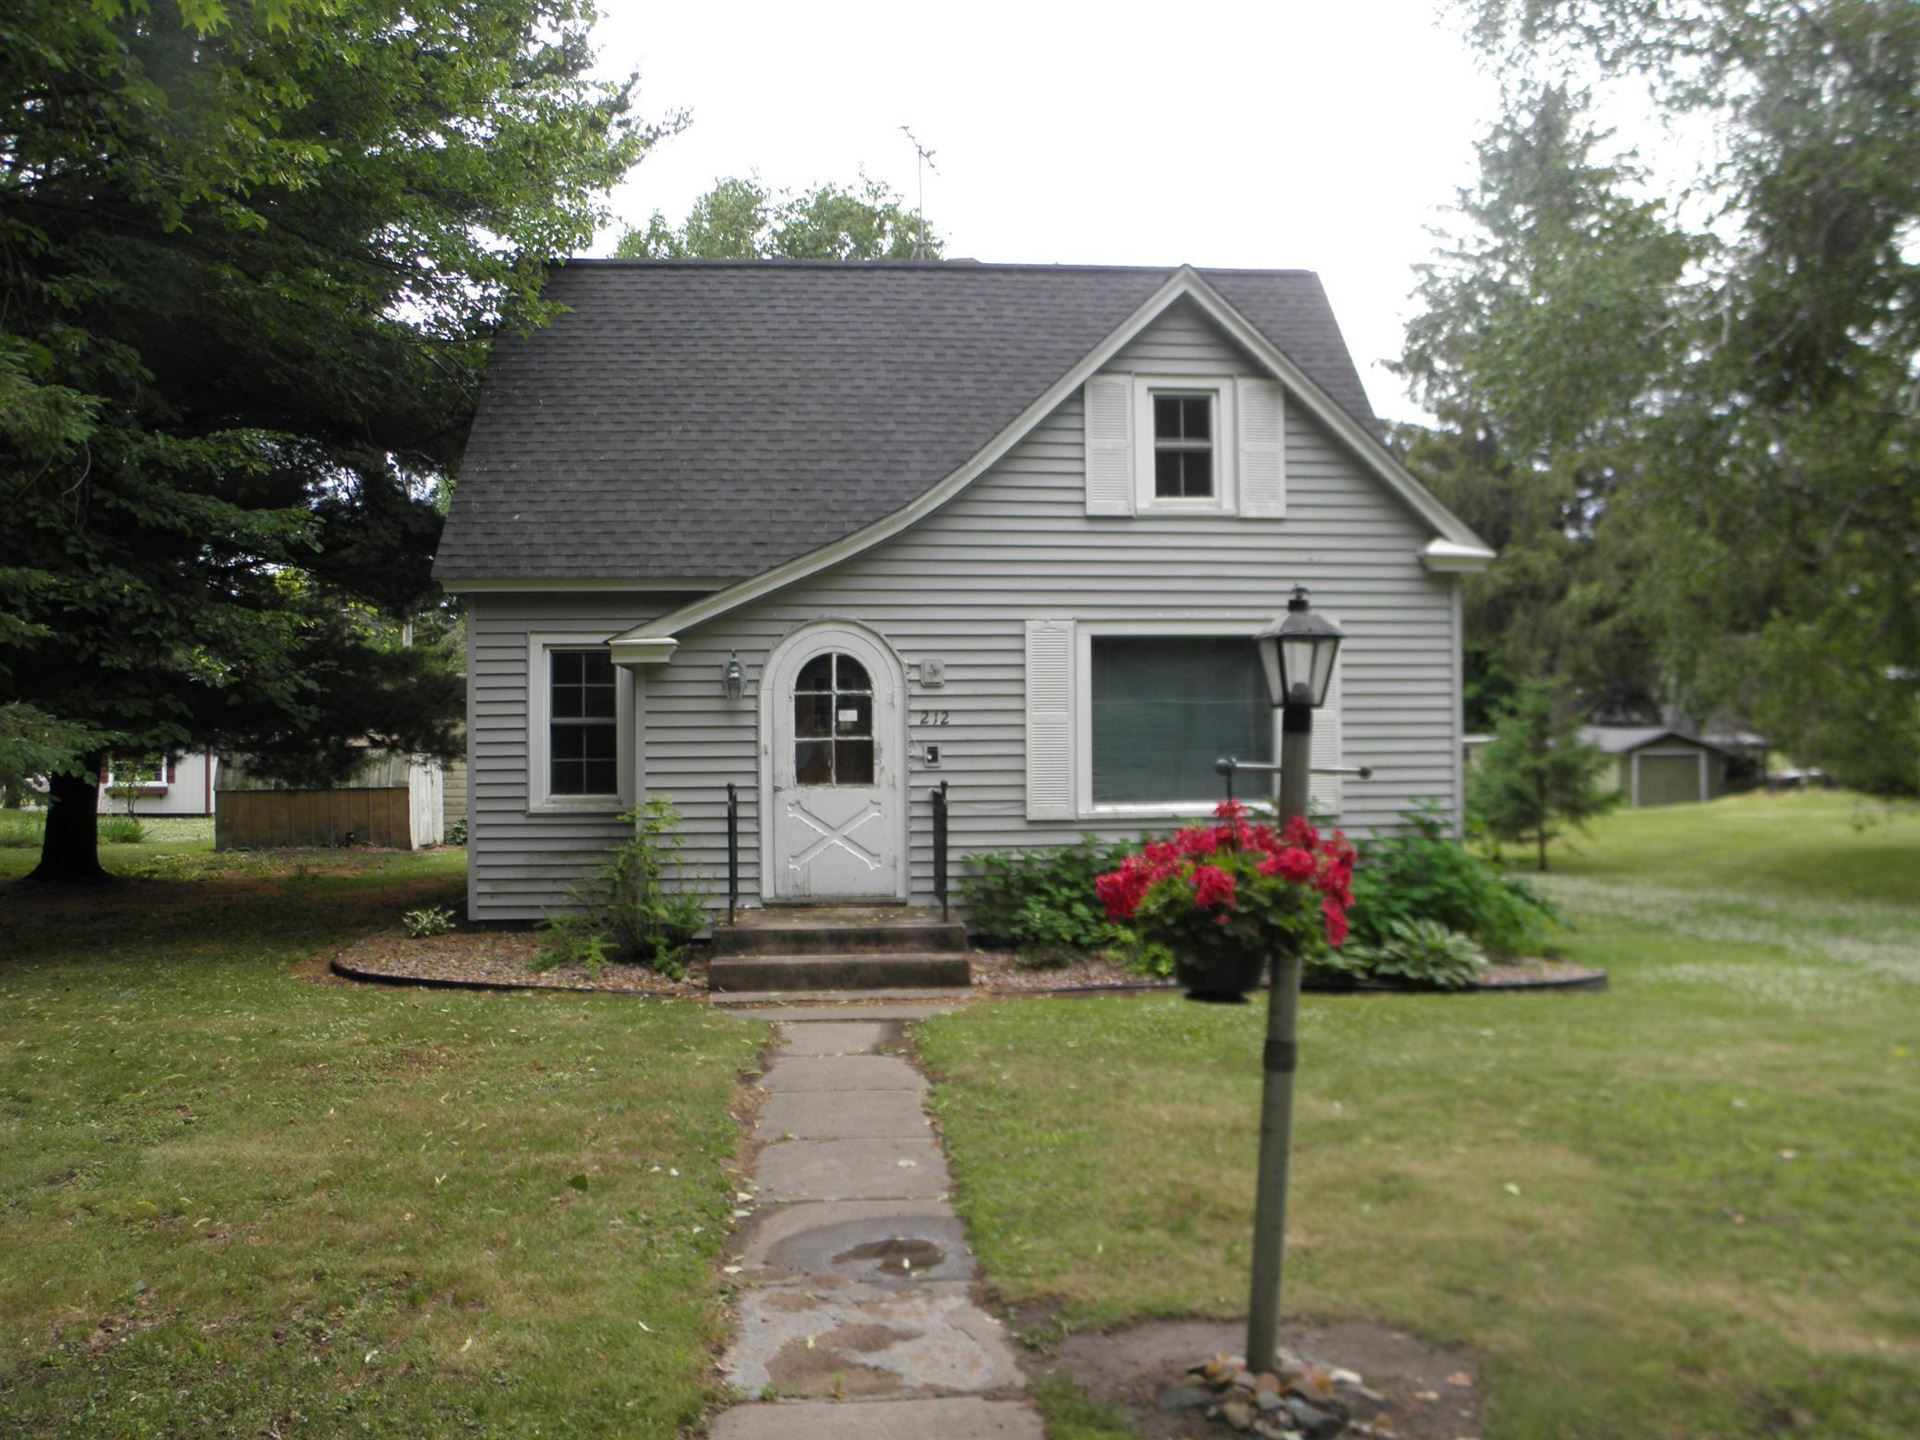 212 E 2nd Avenue, Luck, WI 54853 - MLS#: 5616684